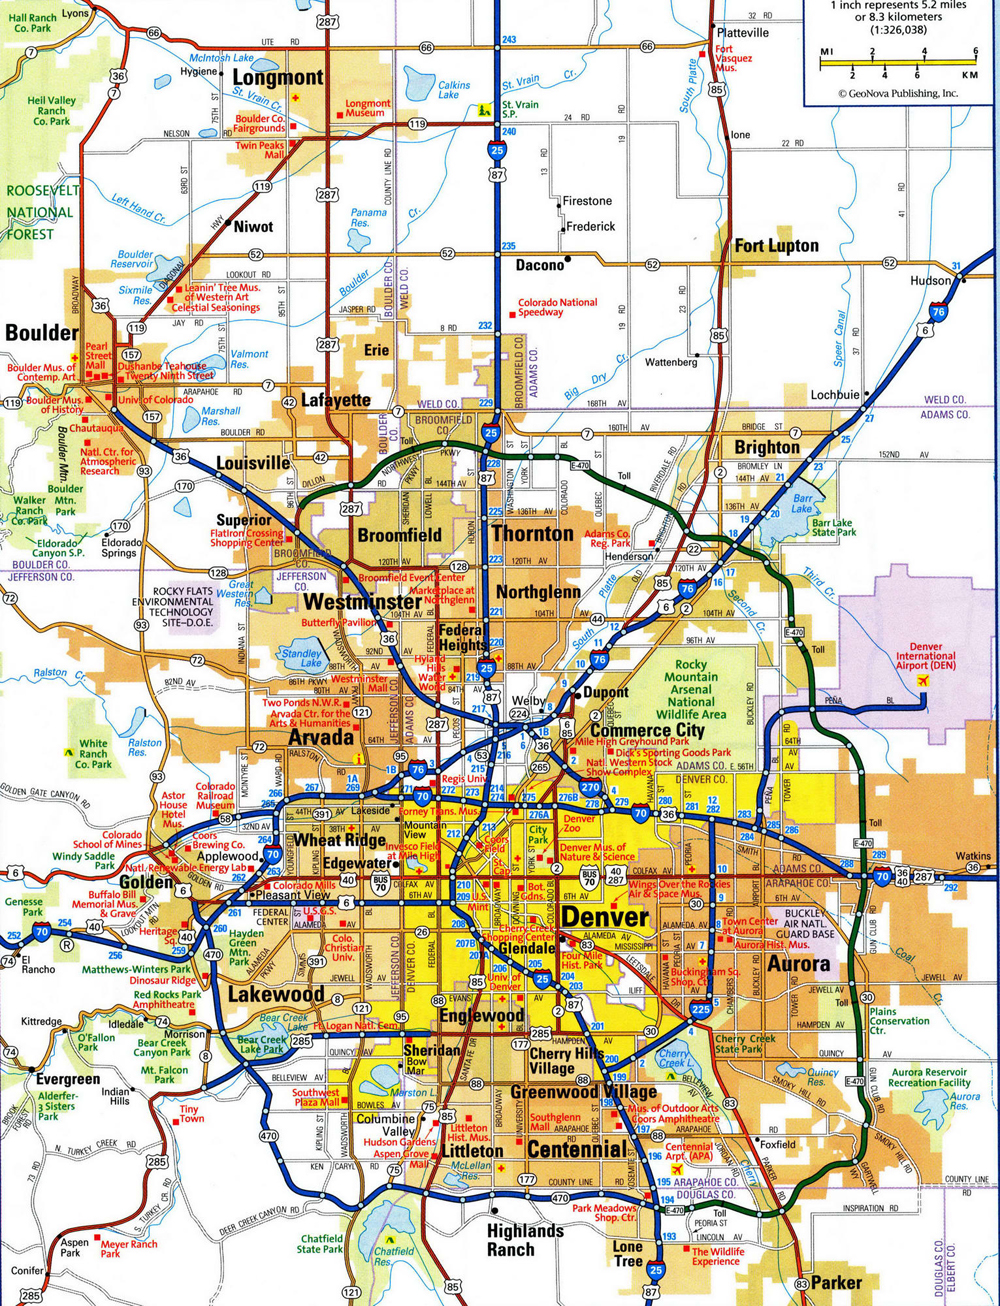 map of metro denver Metro Denver Map map of metro denver